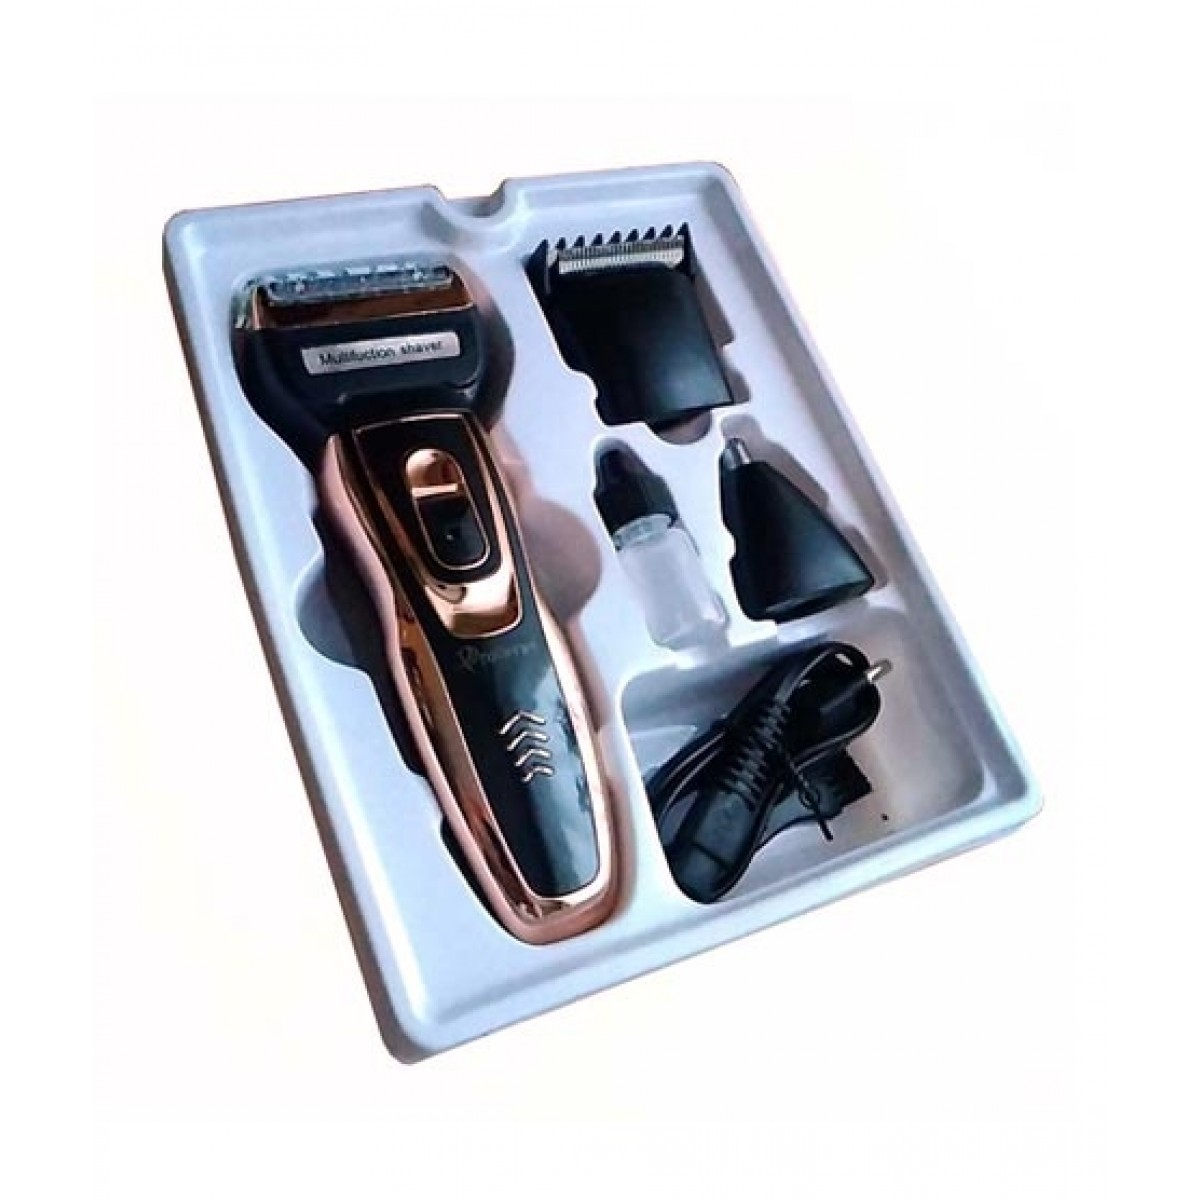 Gemei 3 In 1 Rechargeable Shaver & Hair Trimmer (GM 595)